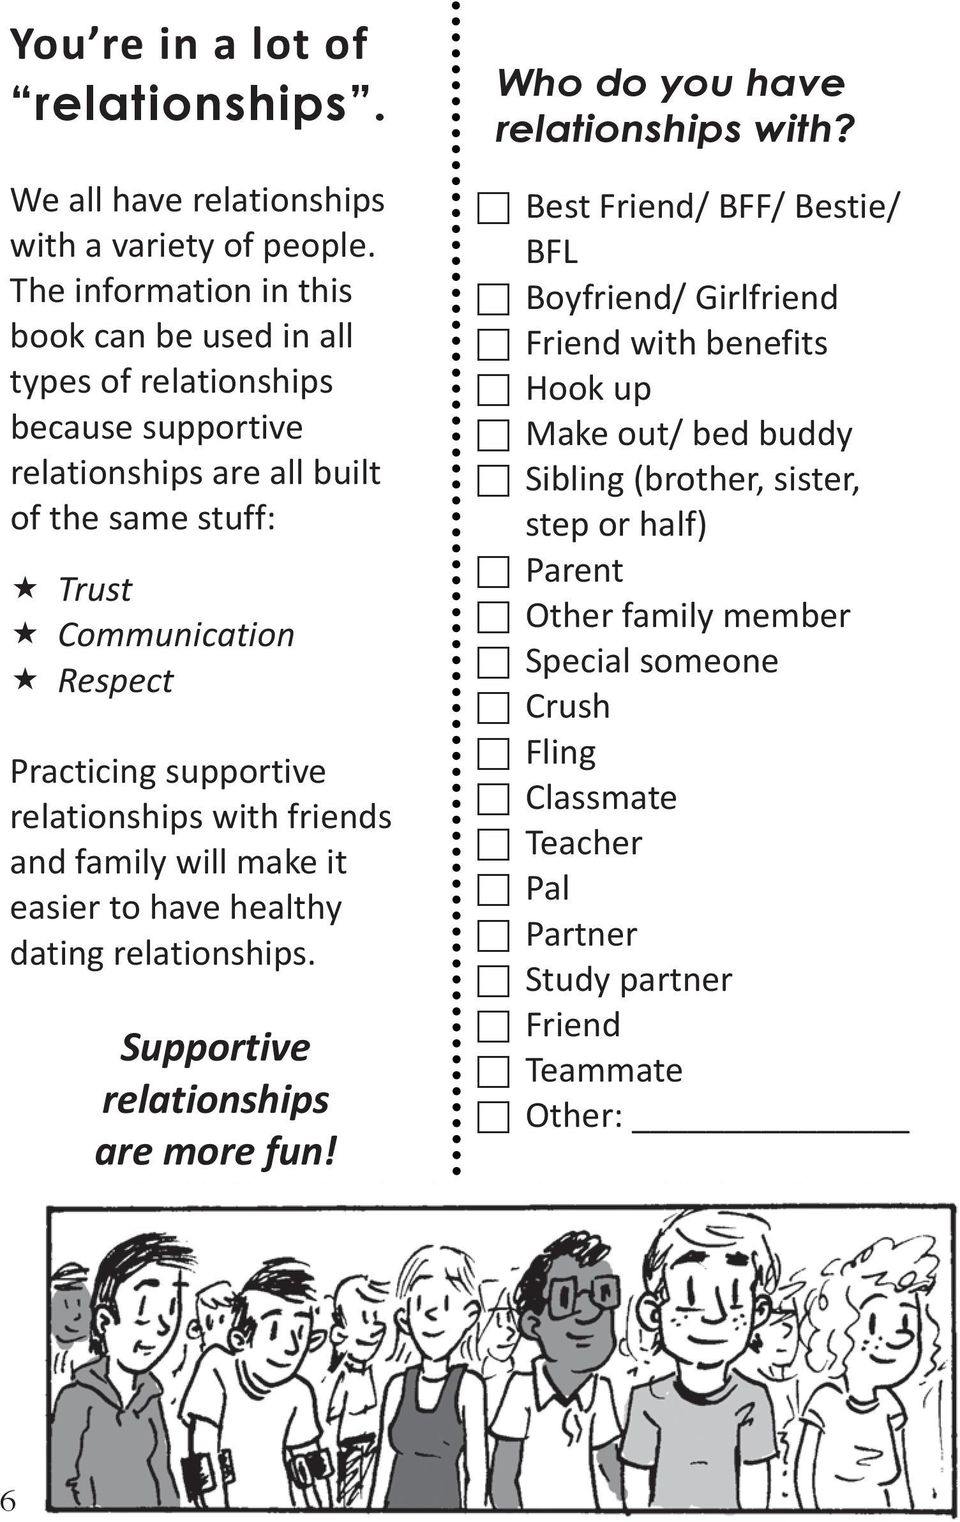 supportive relationships with friends and family will make it easier to have healthy dating relationships. Supportive relationships are more fun!